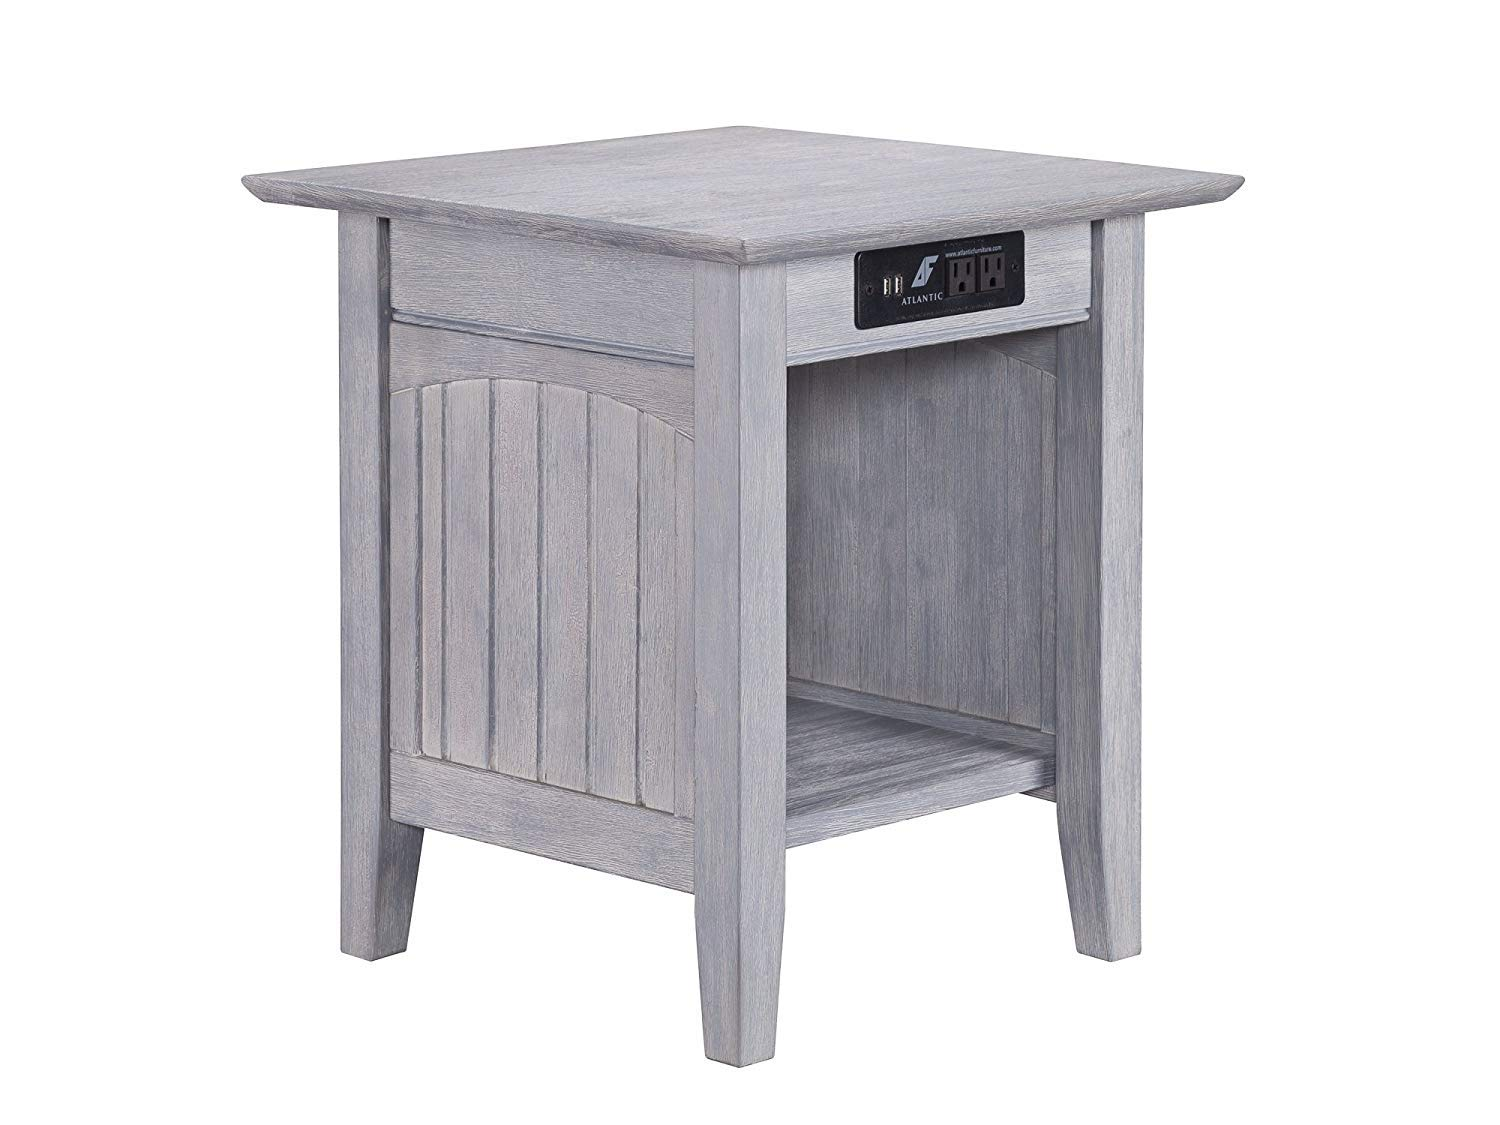 Atlantic Furniture AH14318 Nantucket End Table with Charging Station, Driftwood